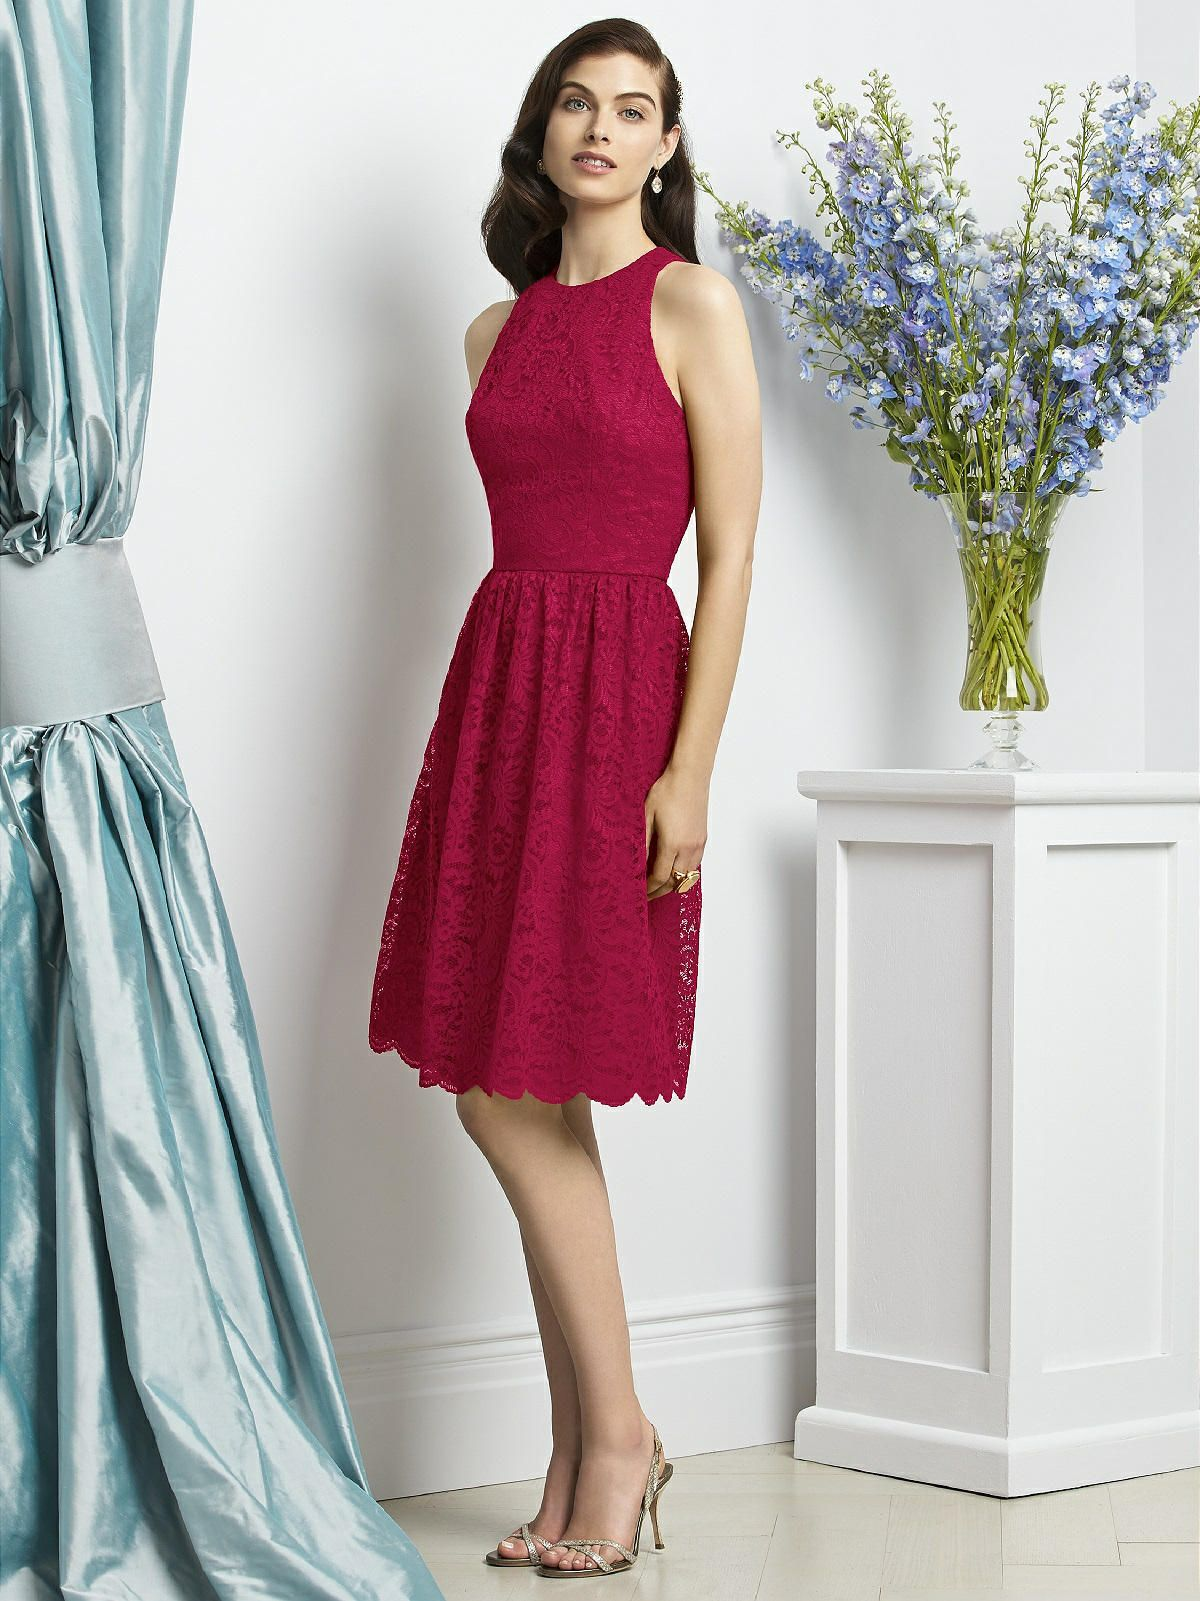 Dessy collection style 2939 lace bridesmaids and bridal parties dessy 2939 bridesmaid dress dessy 2939 is a cocktail length sleeveless marquis lace dress w jewel neckline and full shirred skirt dress available as solid ombrellifo Choice Image